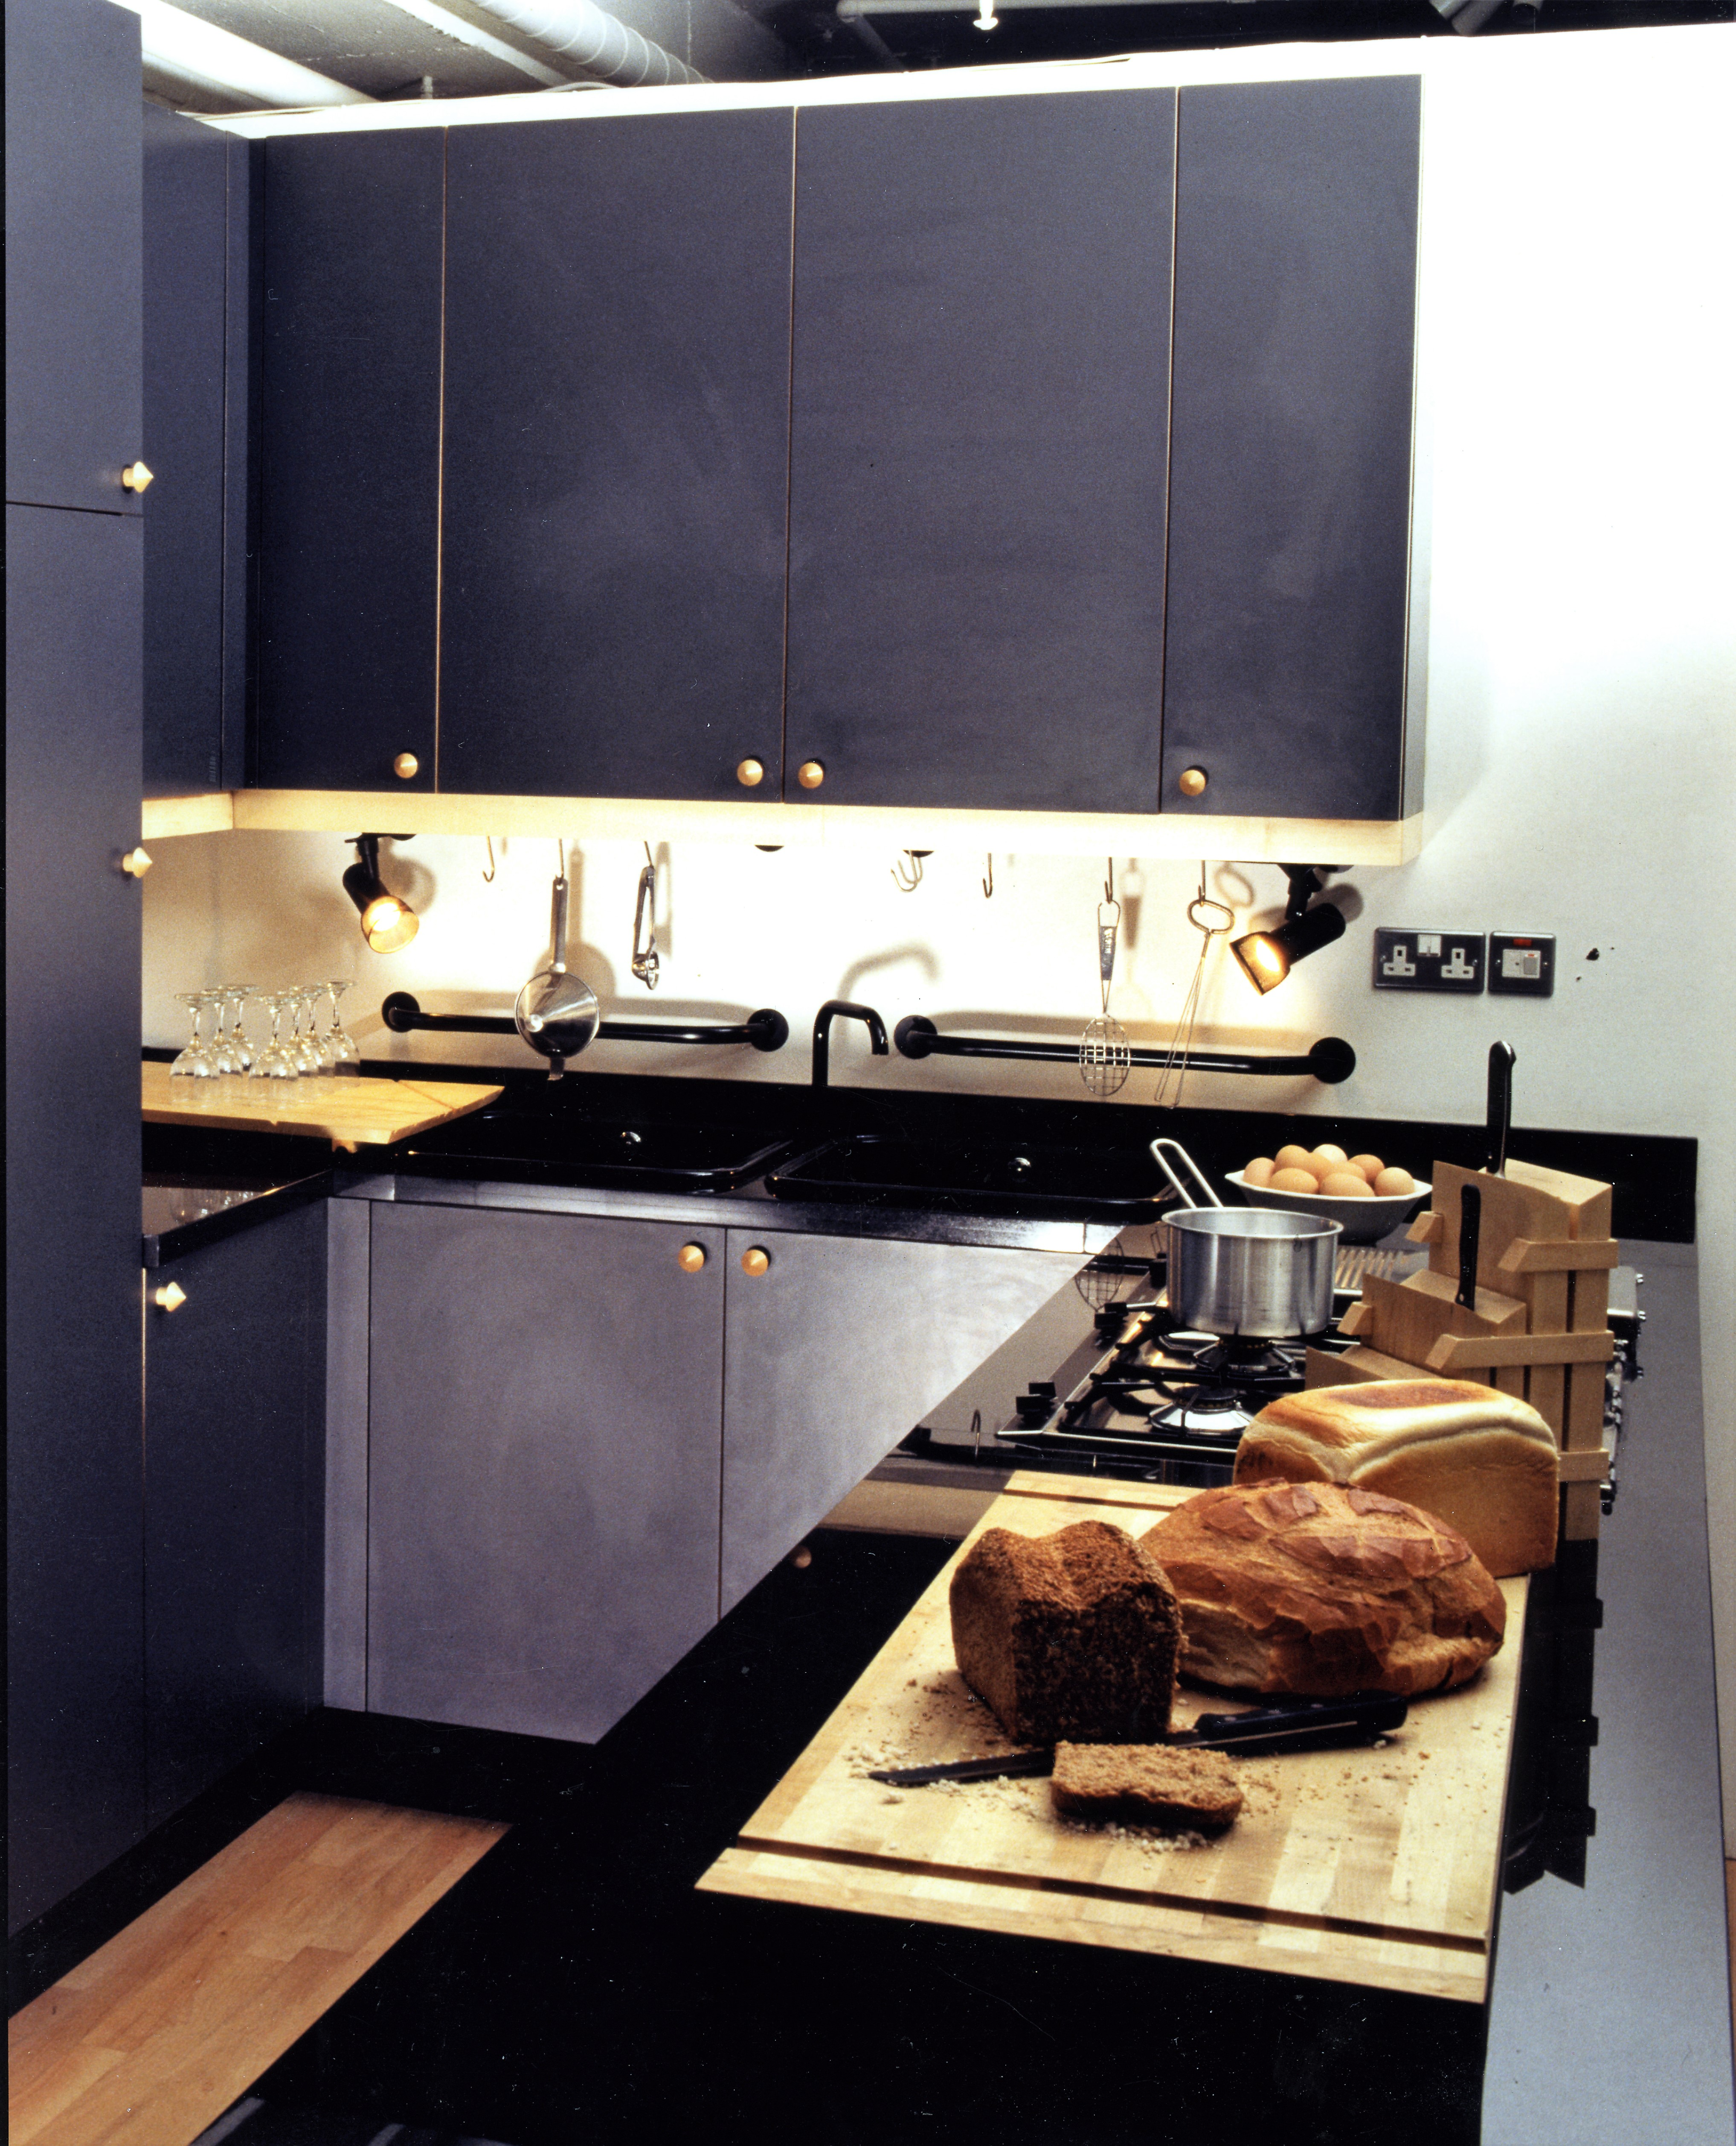 Lewis Design London - Lewis & Horning Kitchens (7)